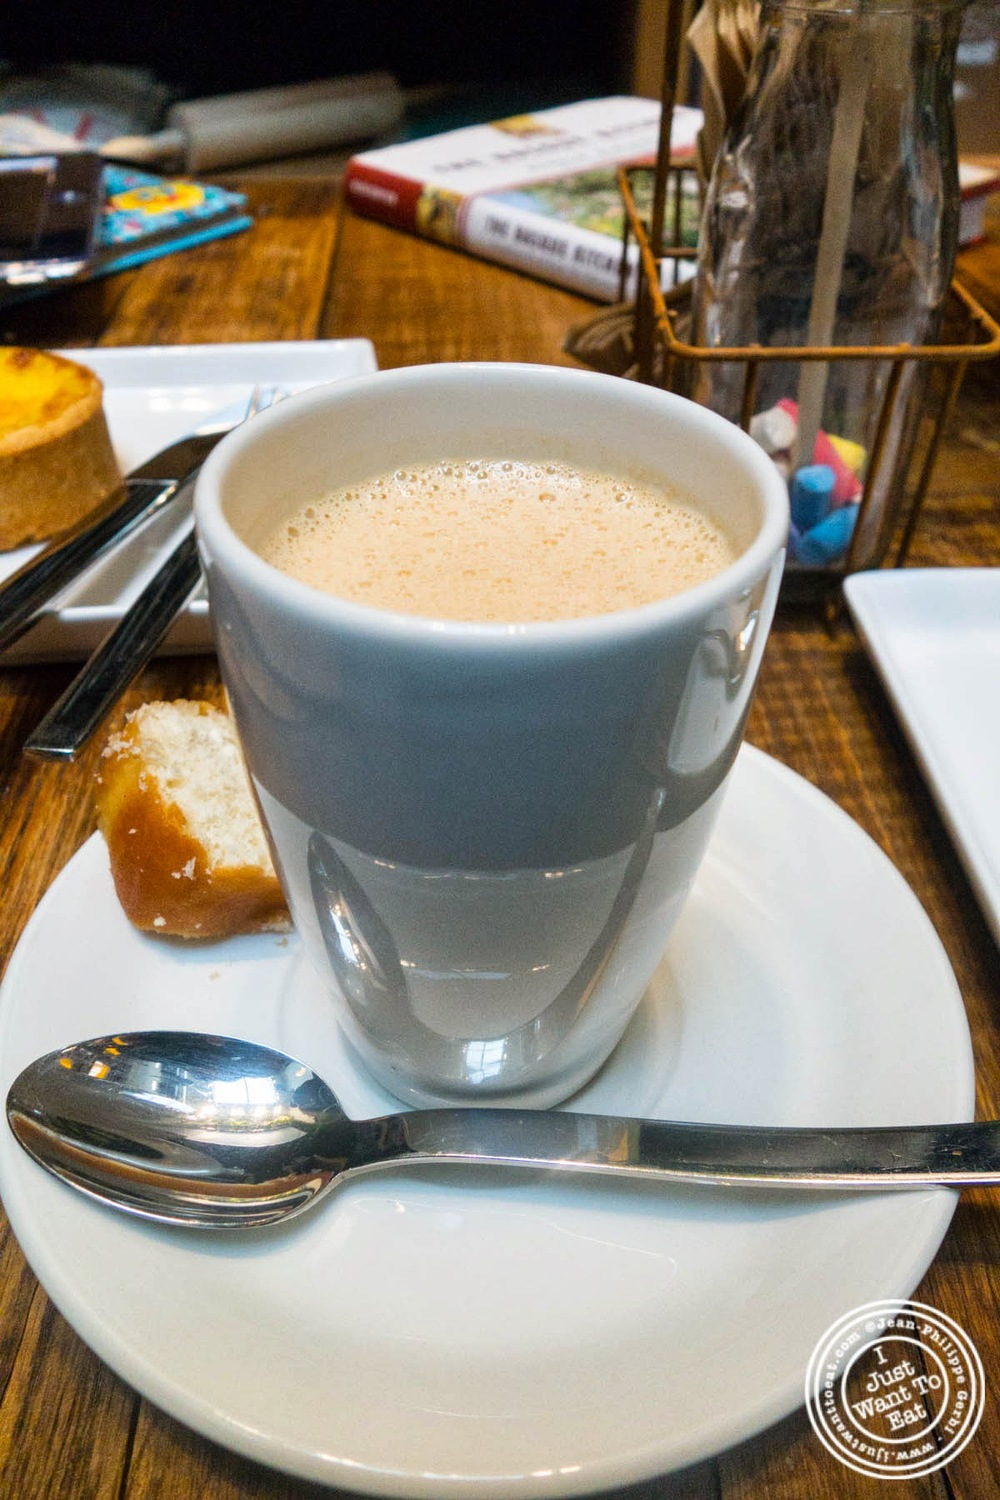 image of café Magdalena aka Muff'nJoe at Hogar Dulce Hogar, a Basque Bakery in Soho